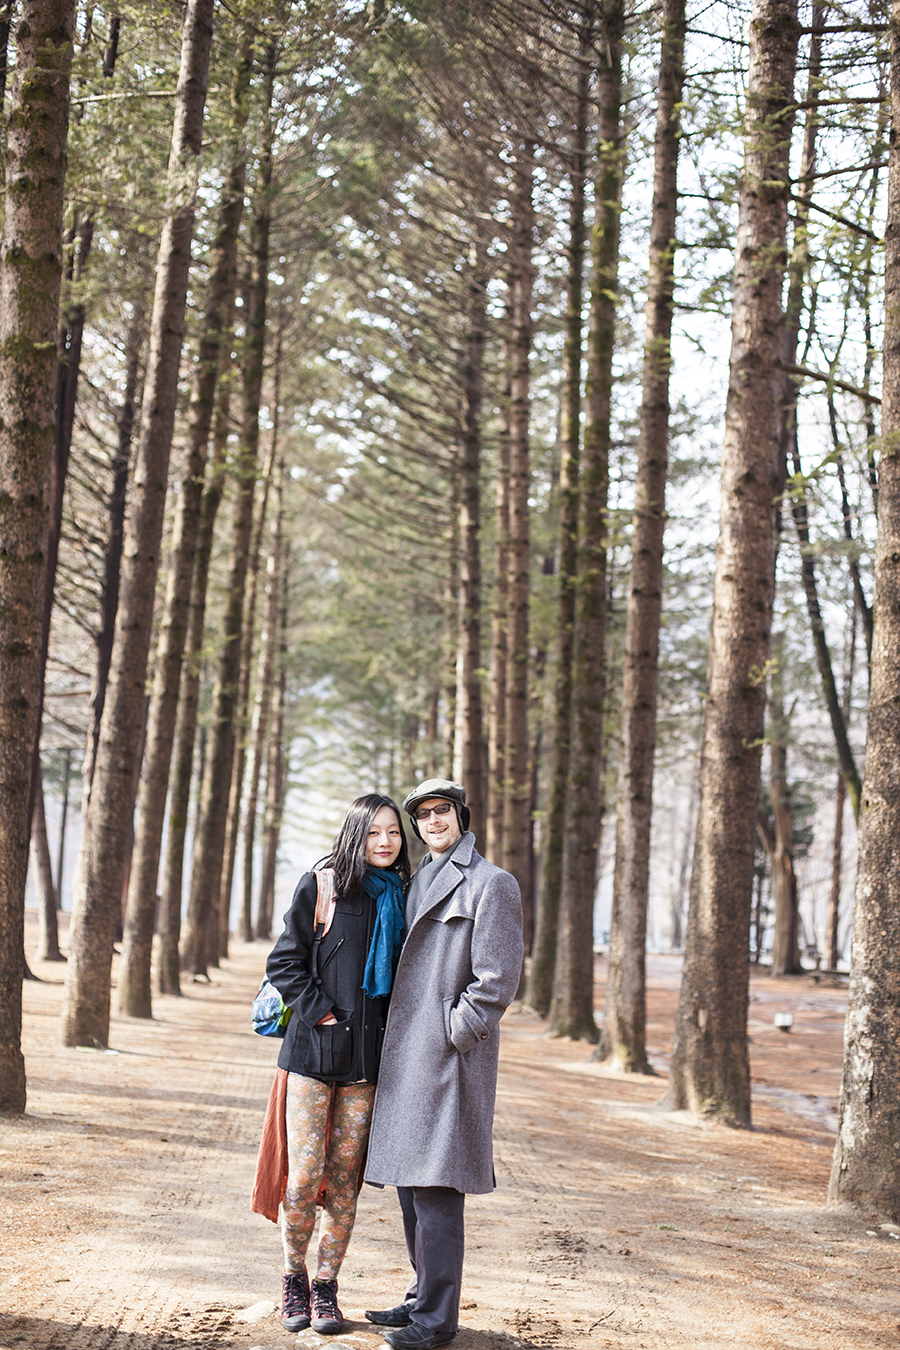 Picture of Ren & Ottie at Nami Island, Gapyeong, South Korea.